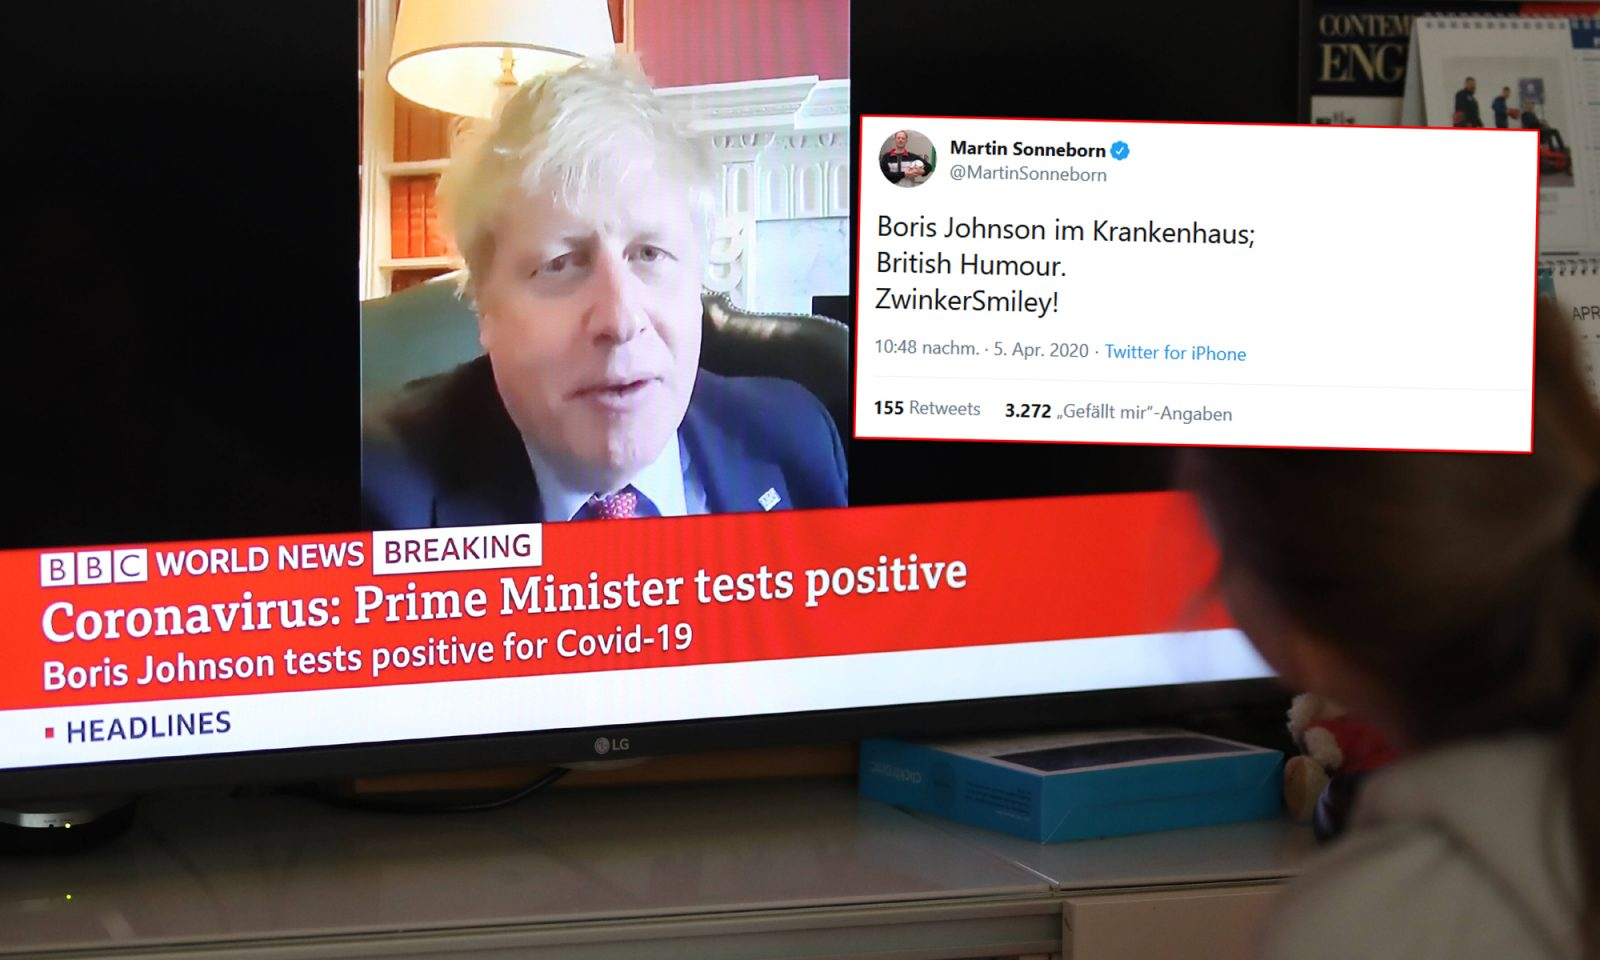 Boris Johnson, Tweet Martin Sonneborn